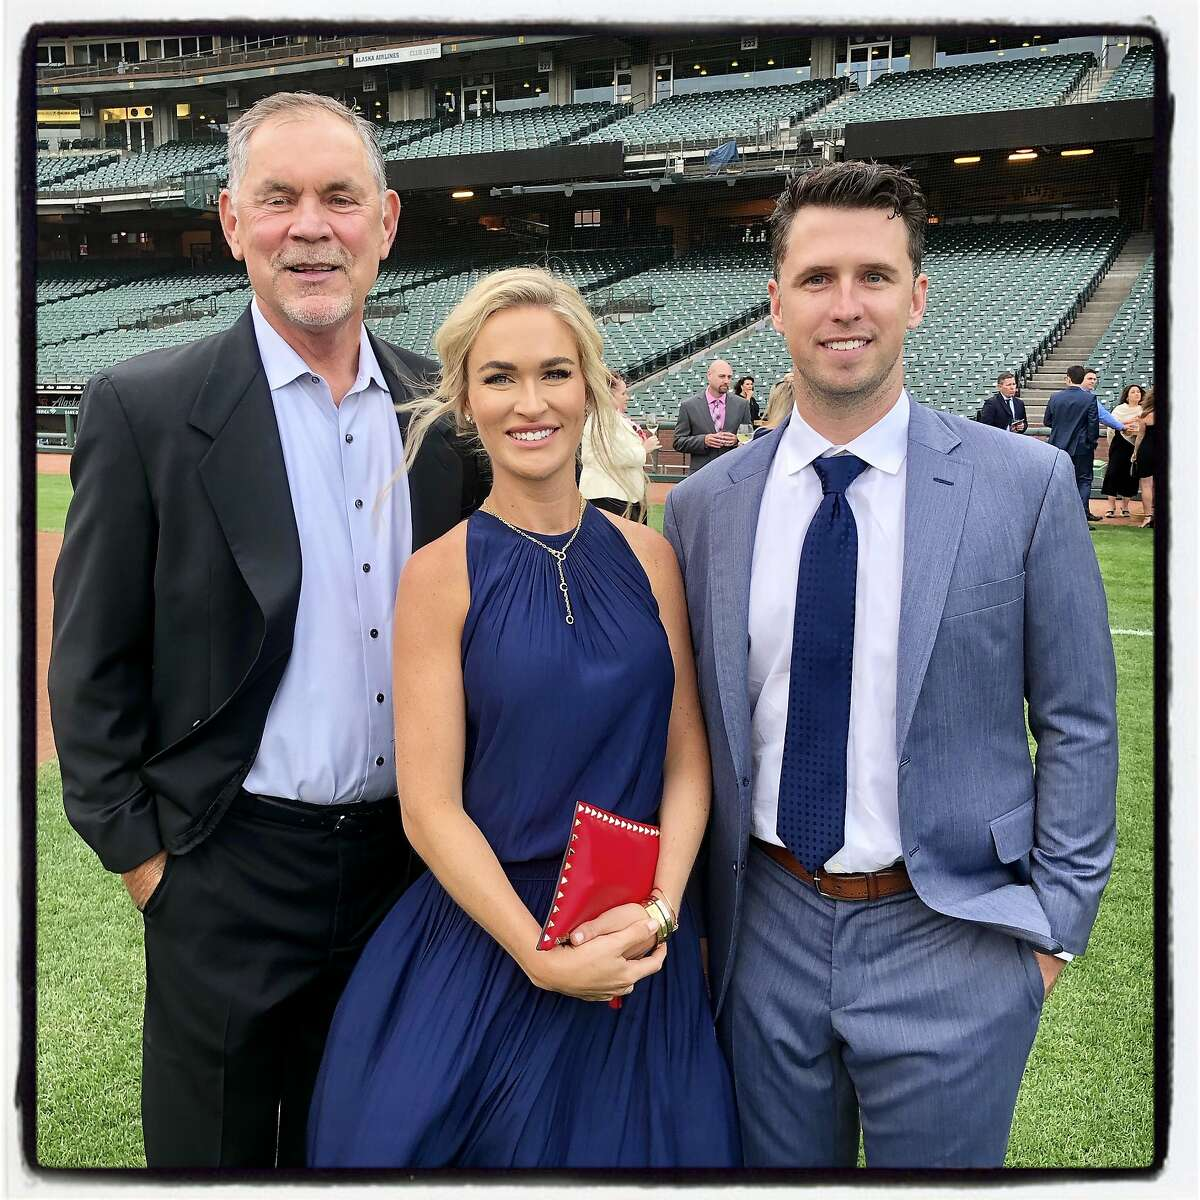 SF Giants Manager Bruce Bochy (left) at Oracle Ballpark with Kristen and Buster Posey for the couple's BP28 Gala. August 28, 2019.